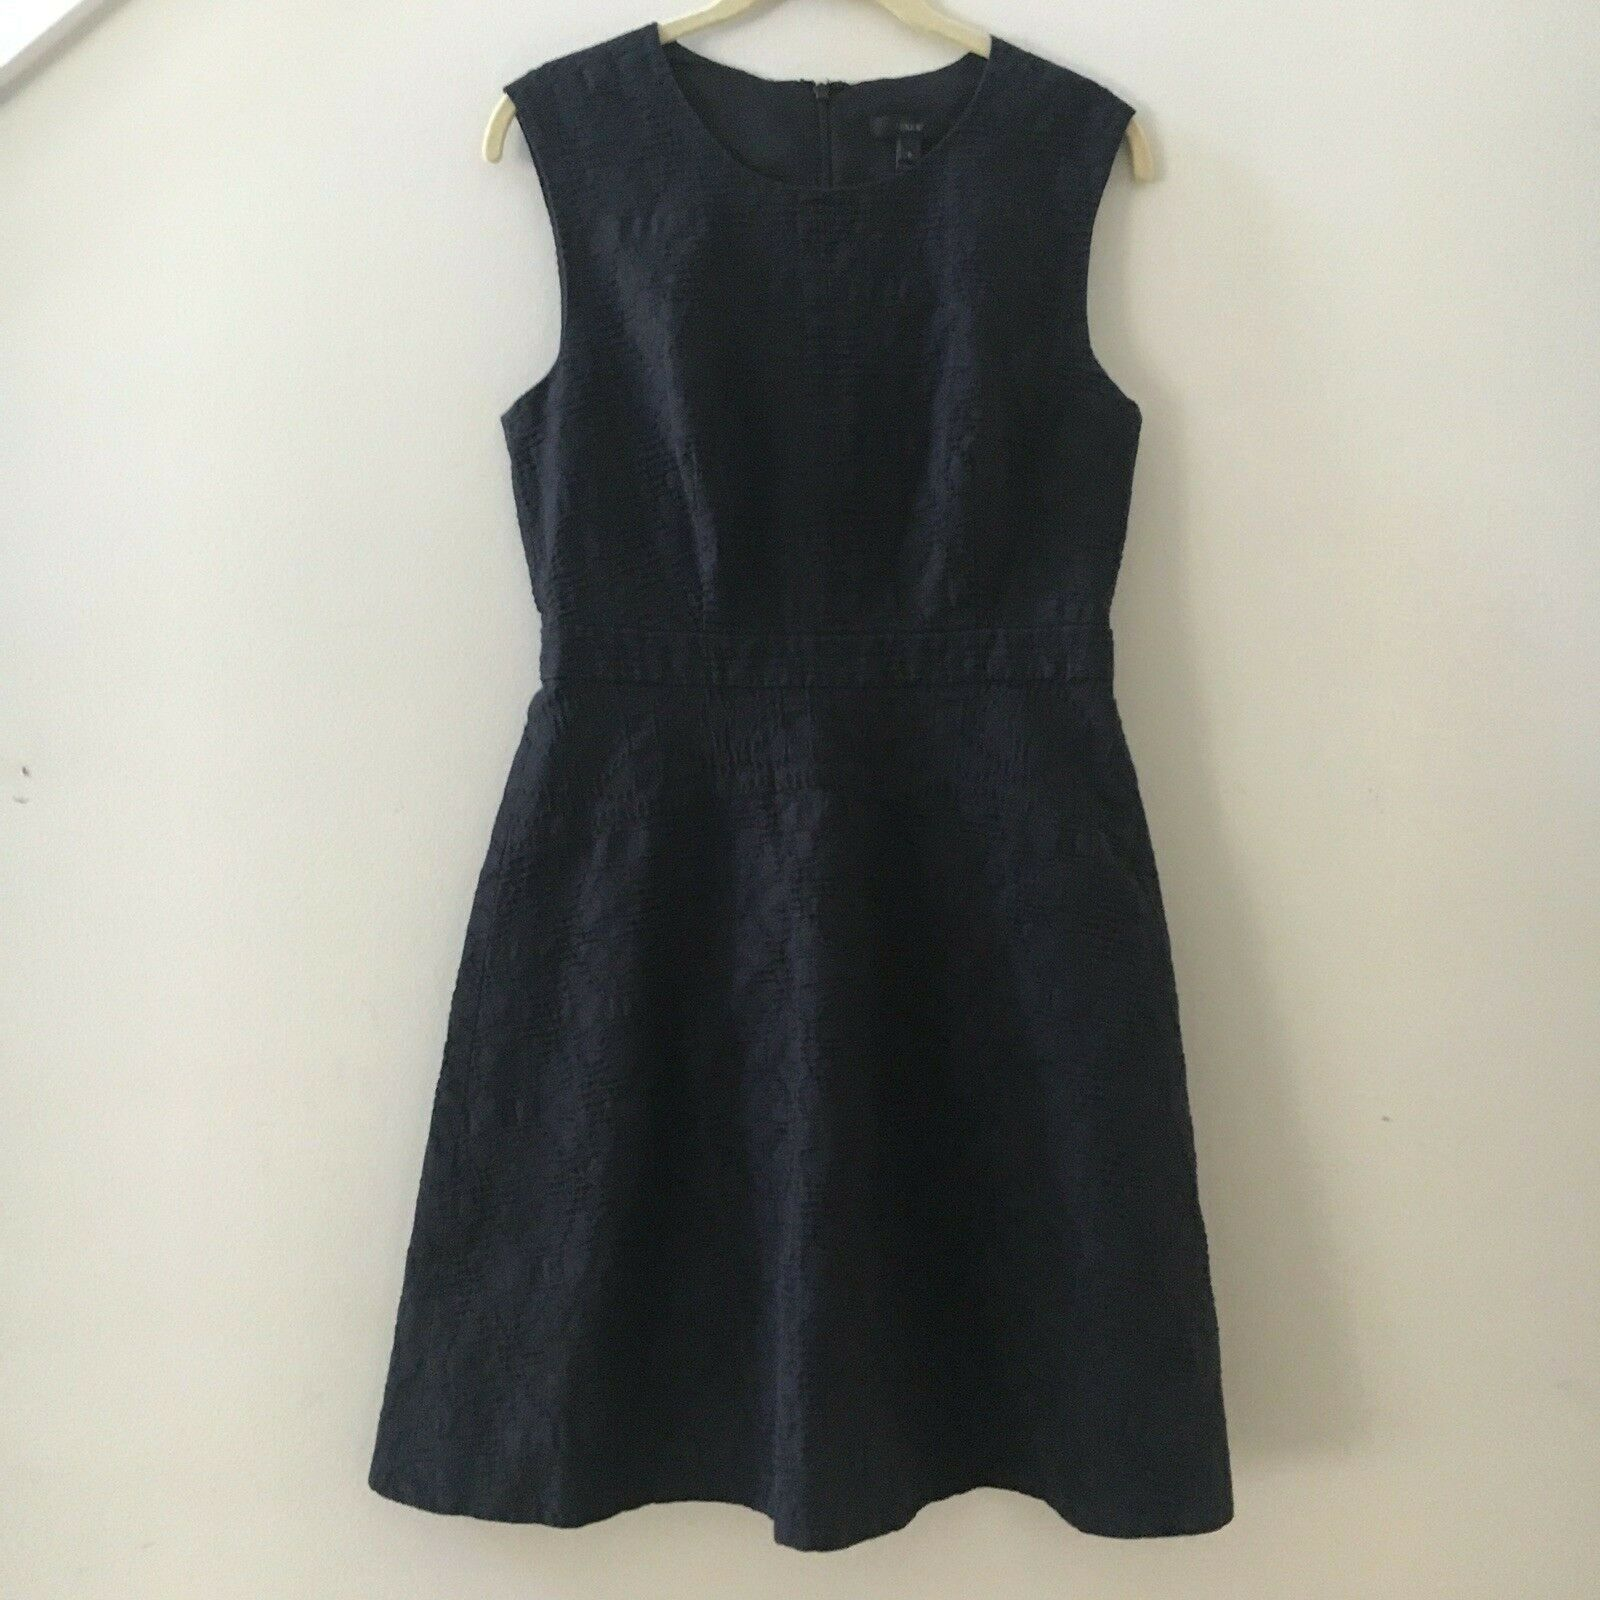 J. Crew Black Textured Embroidered Eyelet Jacquard Lined Dress Sz 6 Retail $158